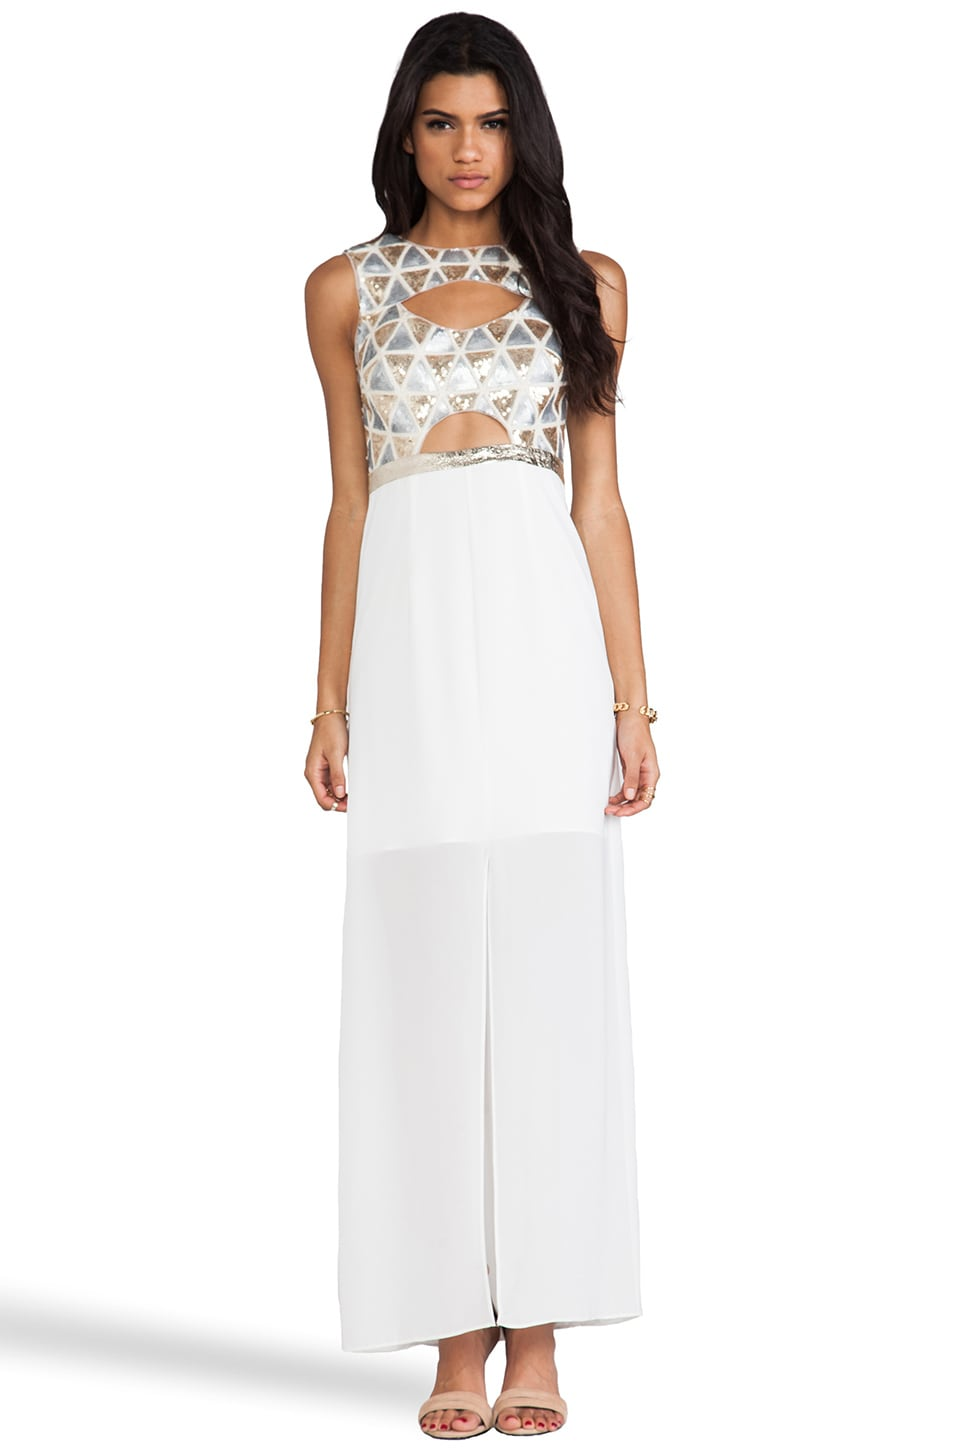 Lumier Blessing In Disguise Maxi Dress in Gold & Silver & White